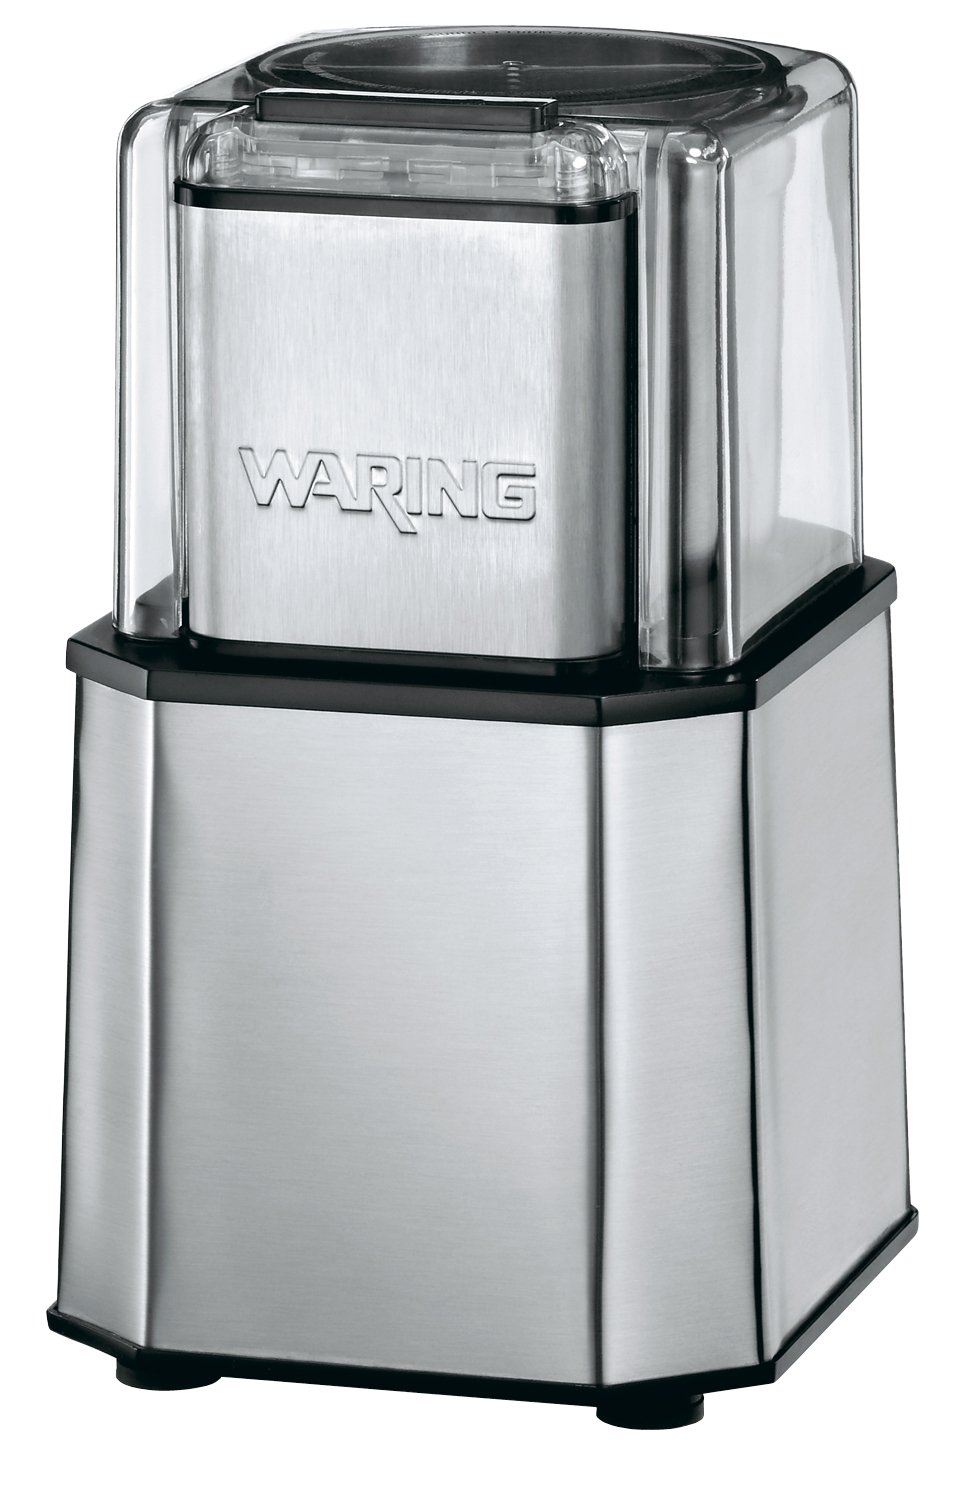 Waring Commercial WSG30 Commercial Medium-Duty